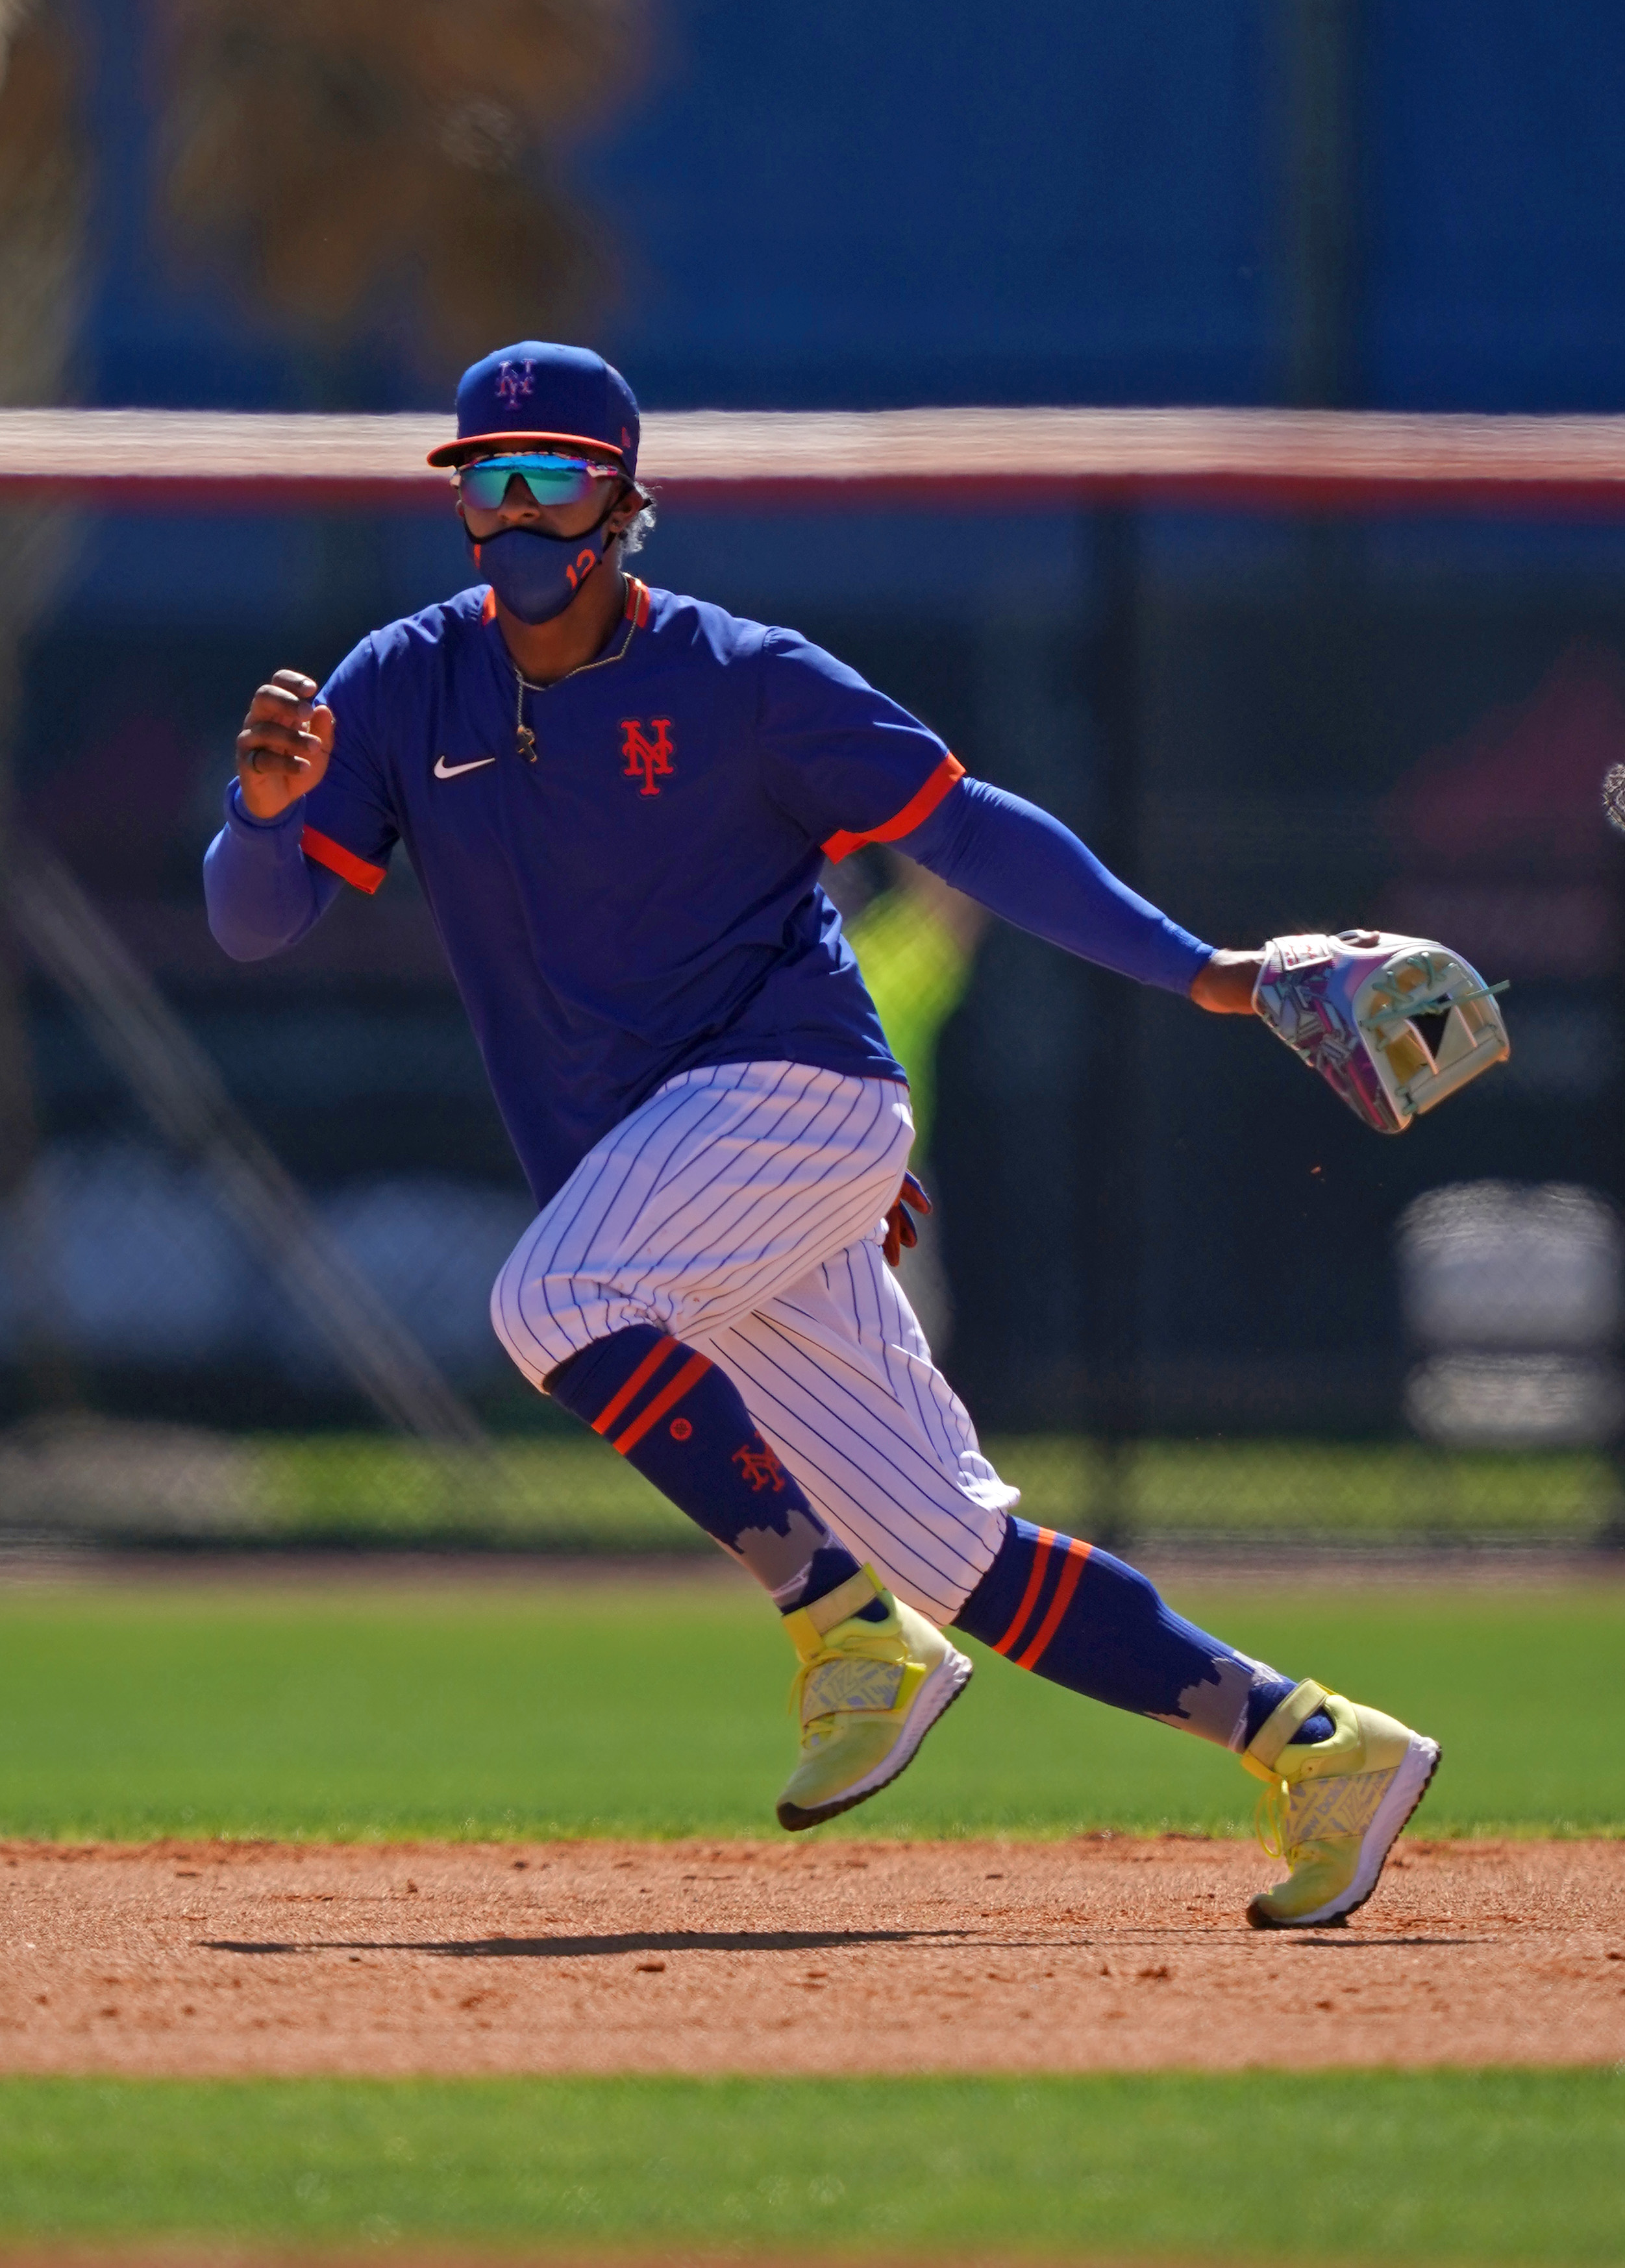 New York Mets shortstop Francisco Lindor (12) takes infield practice during spring training workouts at Clover Park.